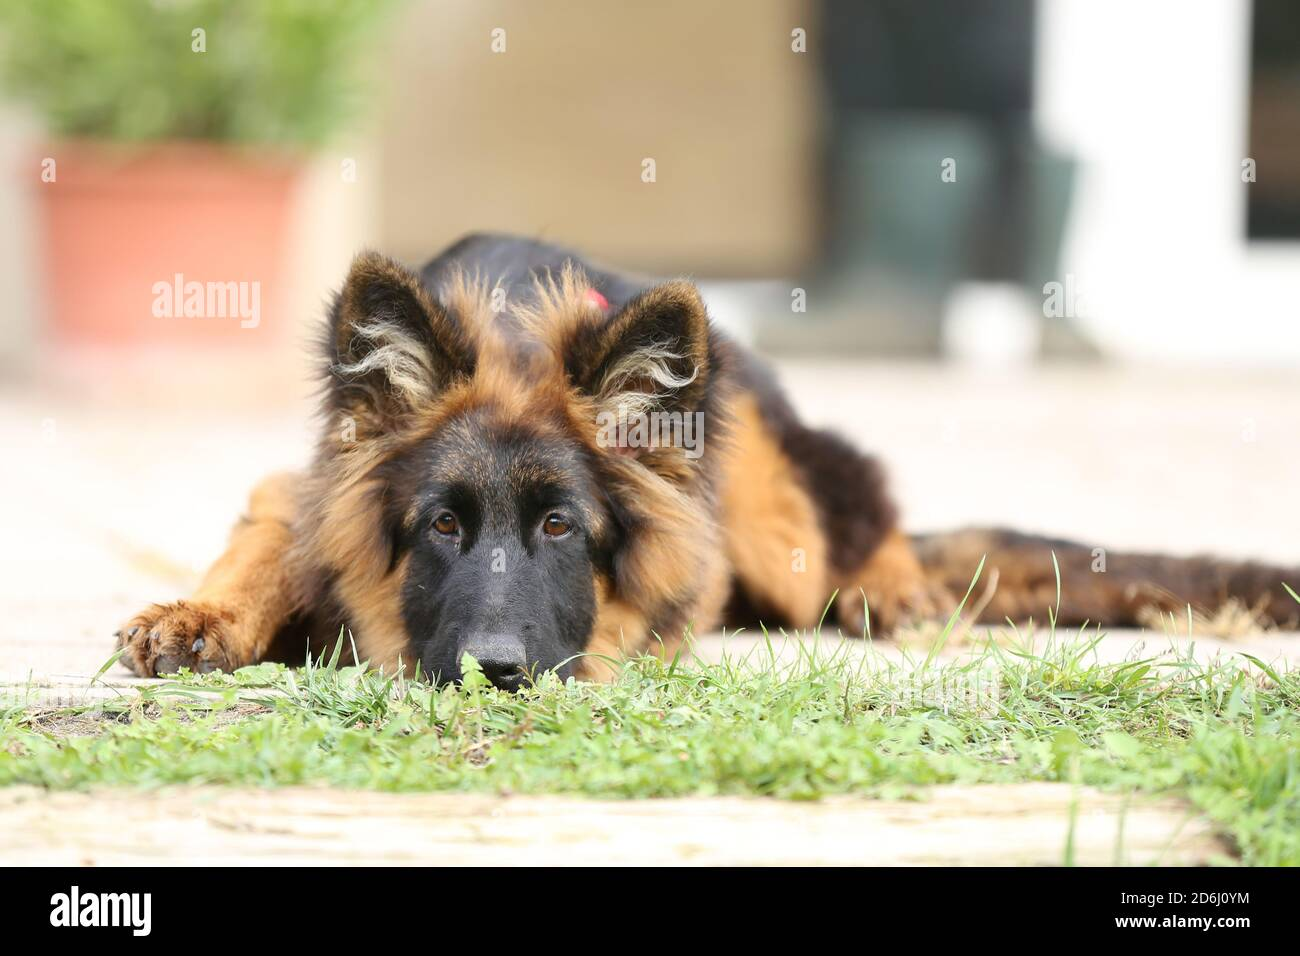 Portrait Of A Black And Tan Long Haired German Shepherd Puppy In Horse Riding Club Summertime Stock Photo Alamy